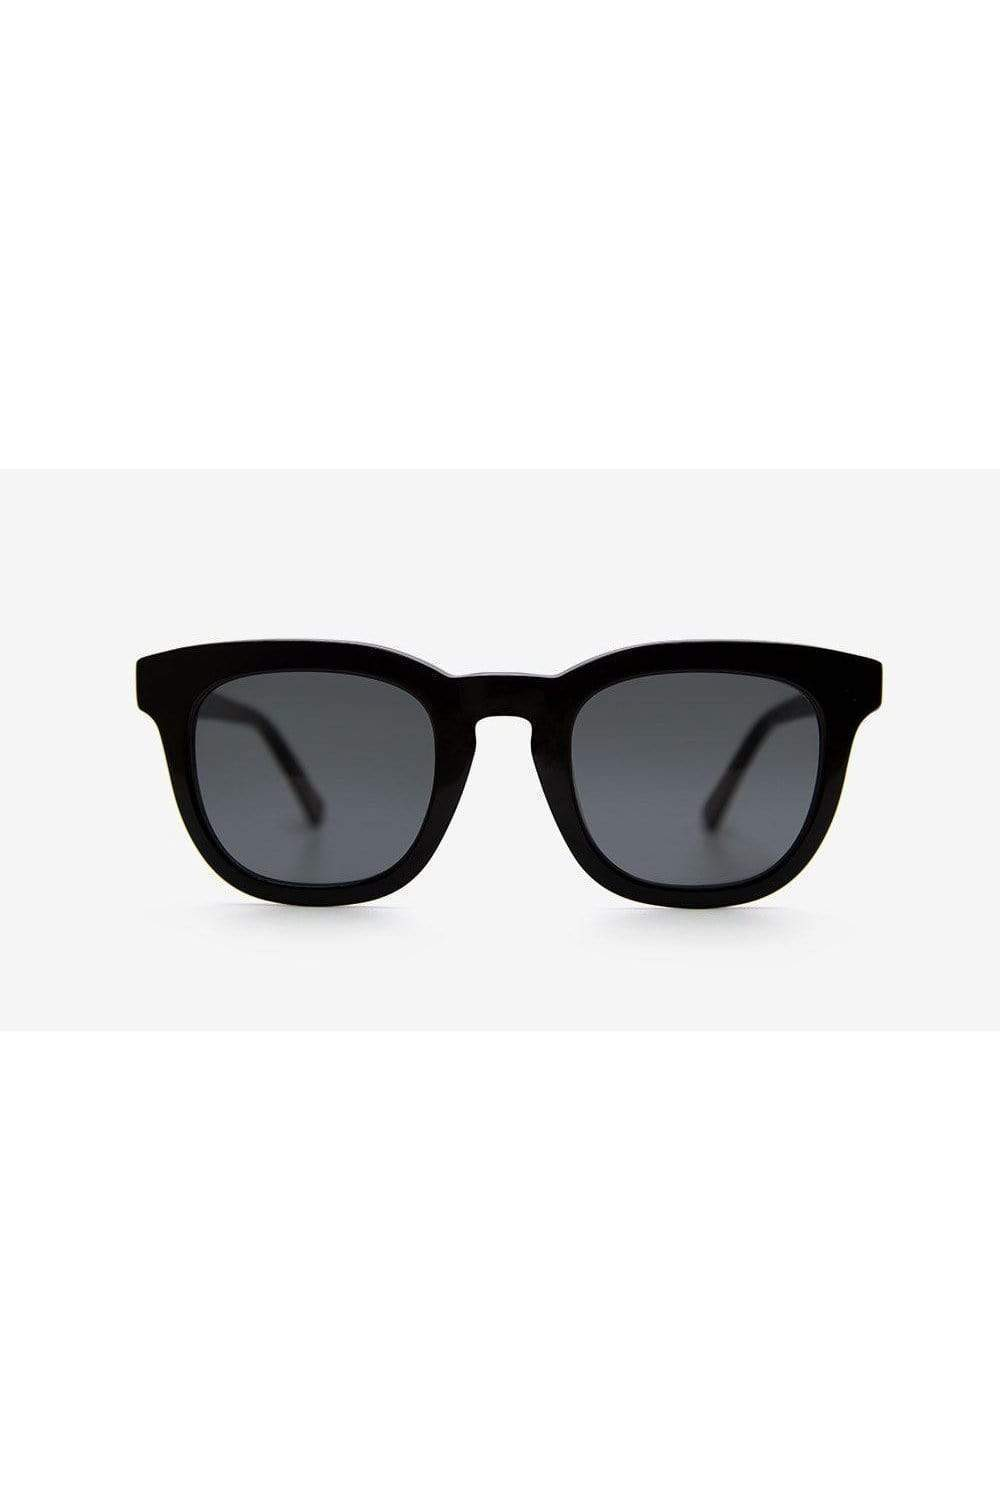 PALA sunglasses Pendo Sunglasses in Recycled Acetate. sustainable fashion ethical fashion